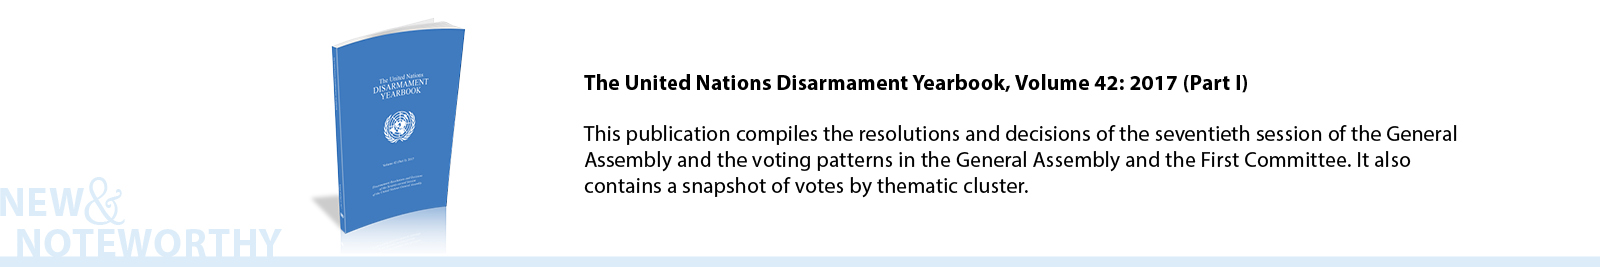 The United Nations Disarmament Yearbook, Volume 42: 2017 (Part I) - This publication compiles the resolutions and decisions of the seventieth session of the General Assembly and the voting patterns in the General Assembly and the First Committee. It also contains a snapshot of votes by thematic cluster